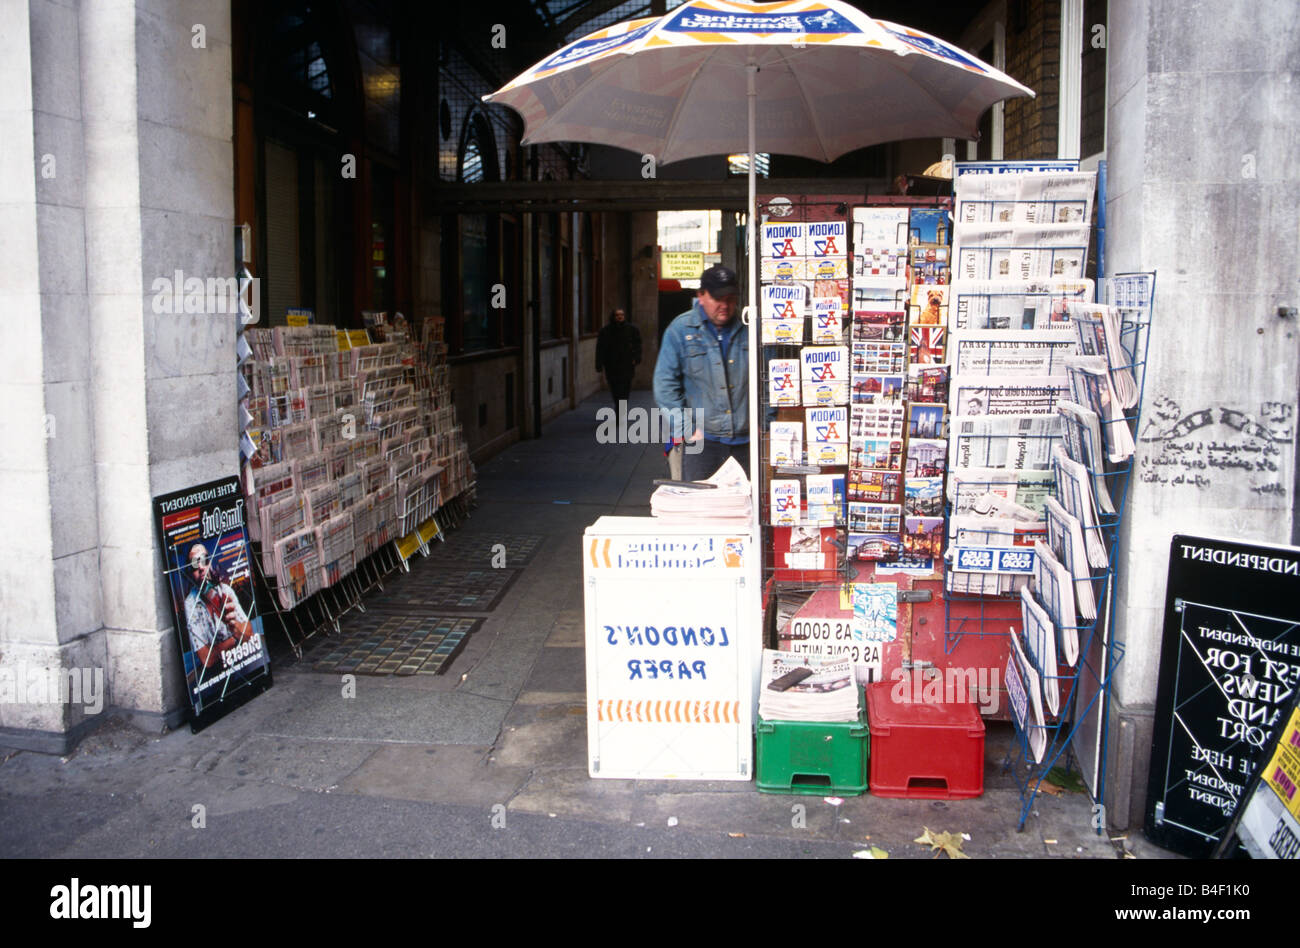 Man at newsstand in walkway, London, England, UK Stock Photo